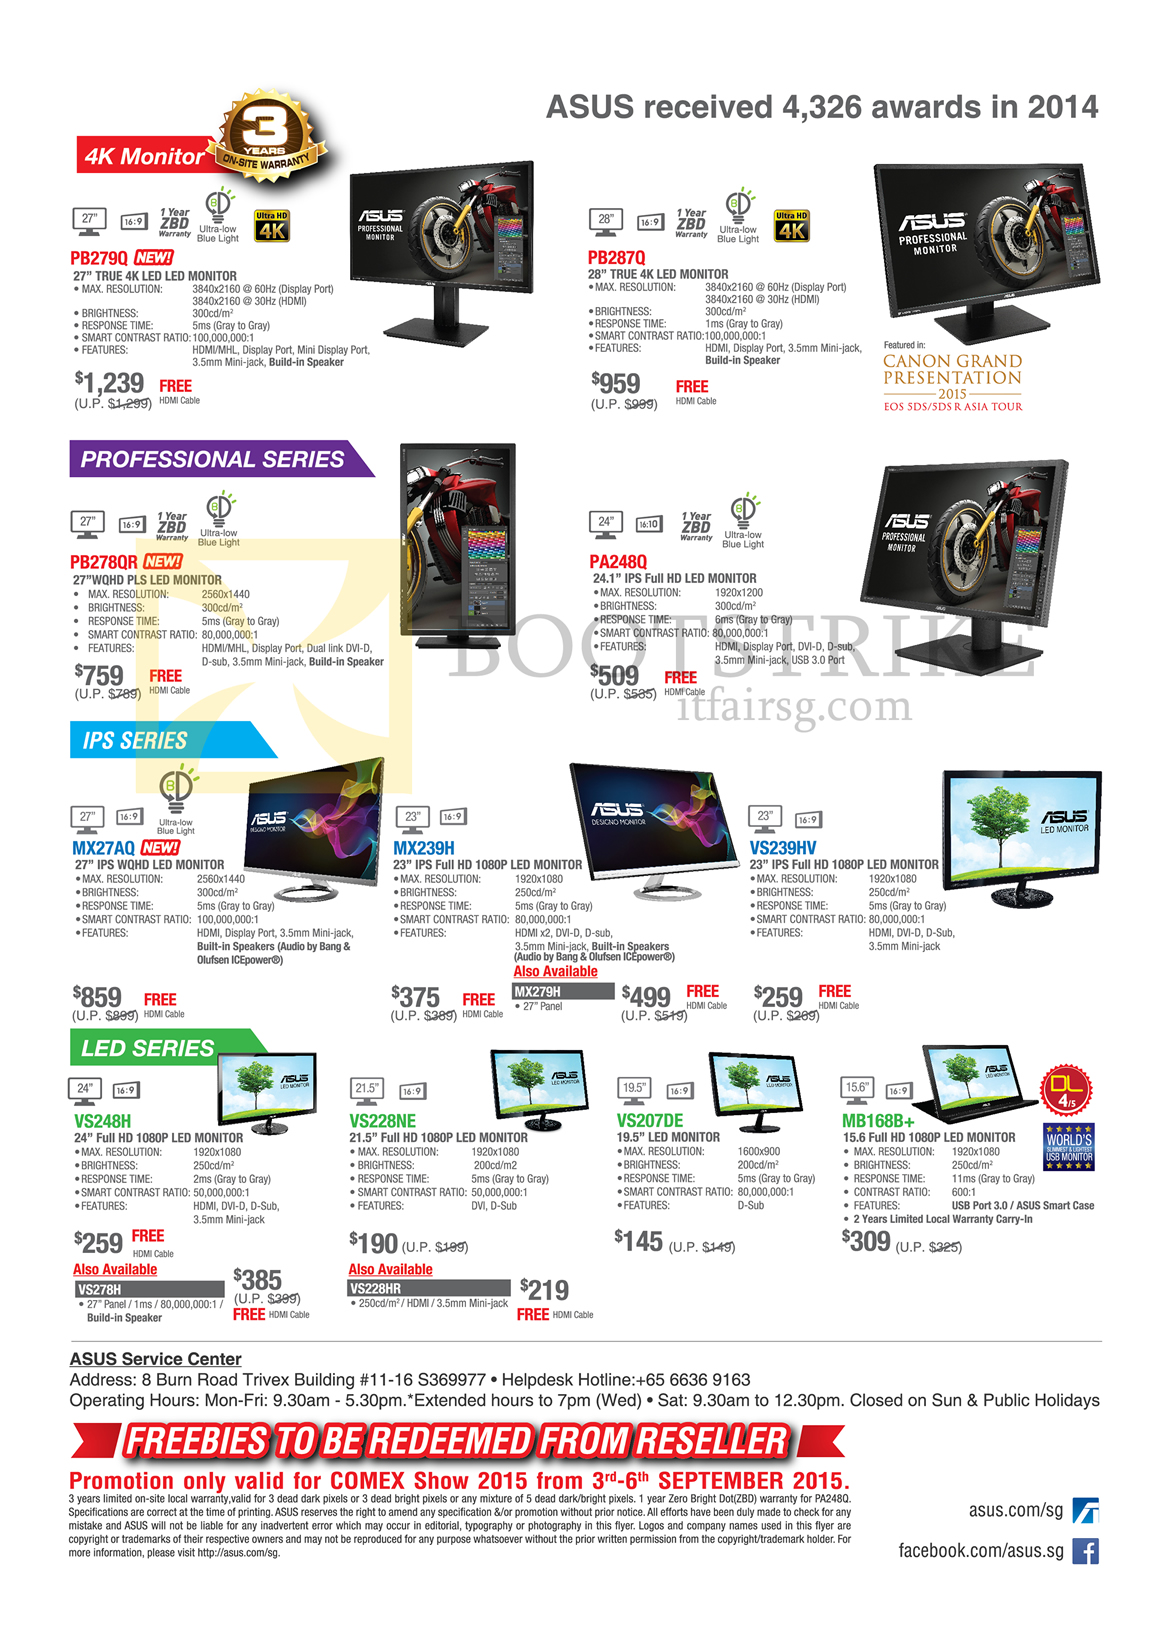 COMEX 2015 price list image brochure of ASUS Monitors LED IPS 4K, PB279Q, PB287Q, PB278QR, PA248Q, MX27AQ, MX239H, MX279H, VS239HV, VS248H, VS278H, VS228HR, VS228NE, VS207DE, MB168B